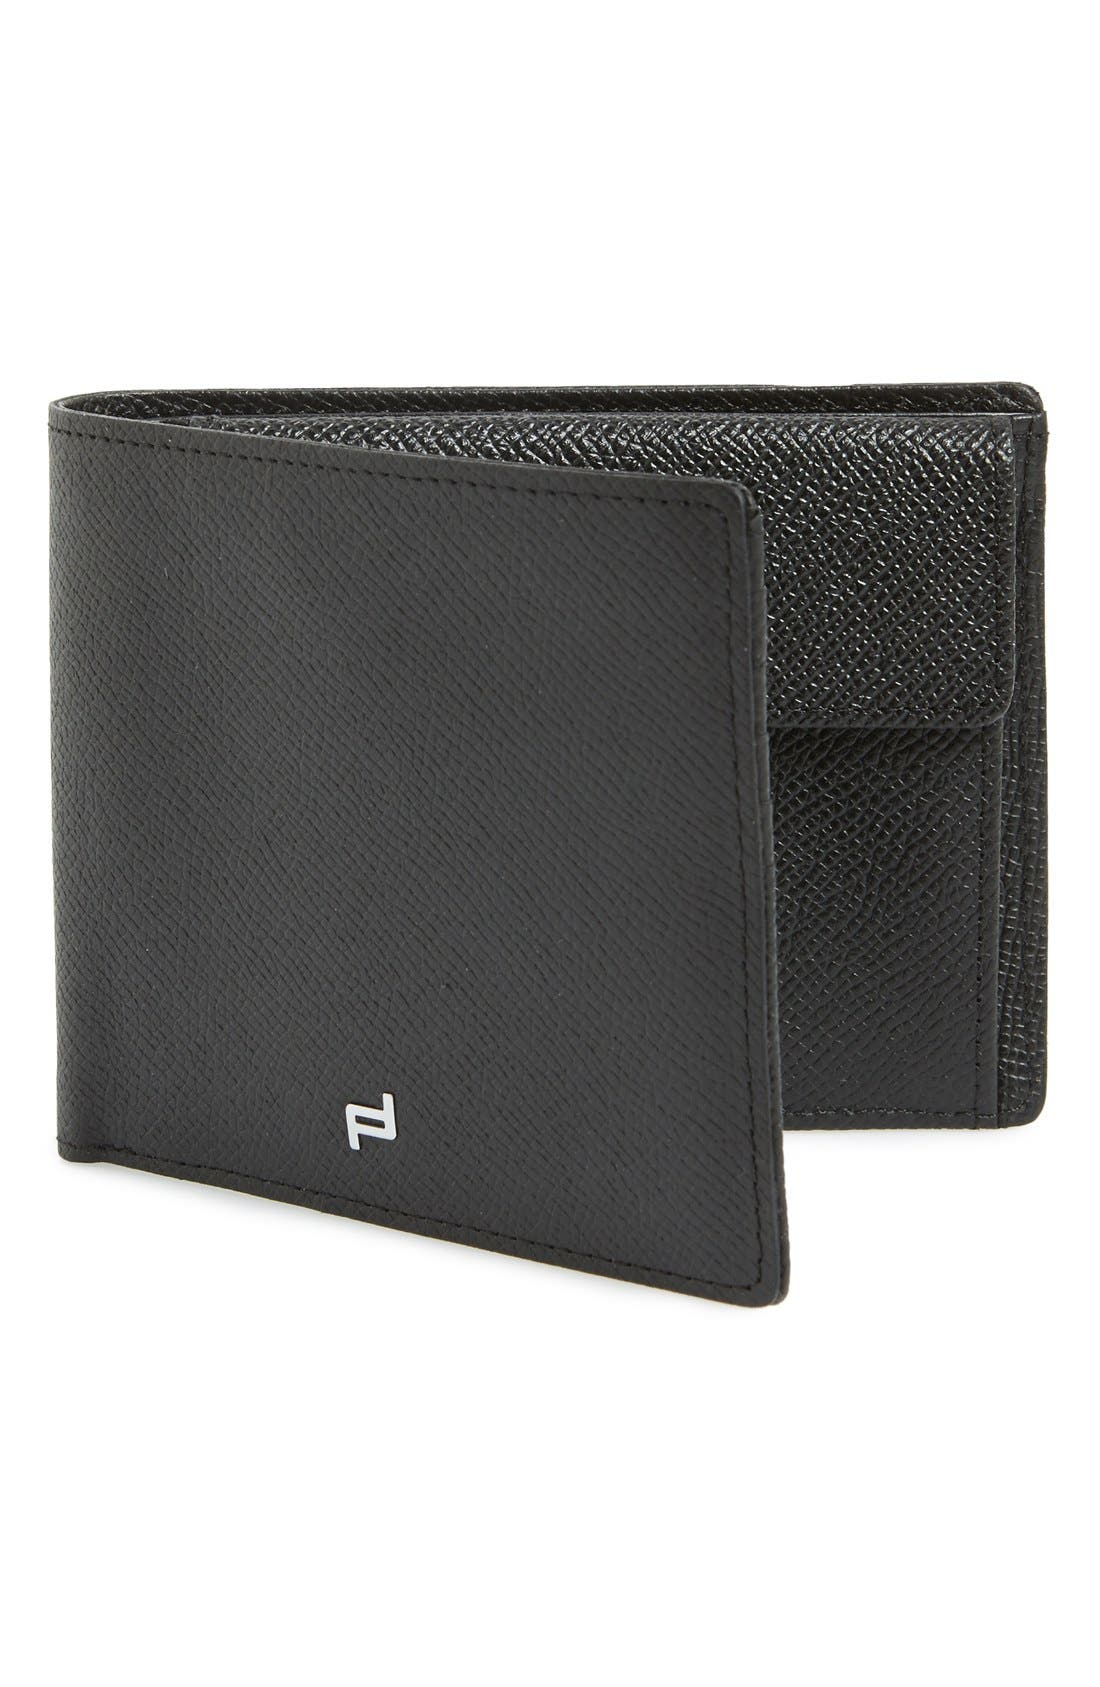 Main Image - Porsche Design 'French Classic 3.0' Leather Billfold Wallet